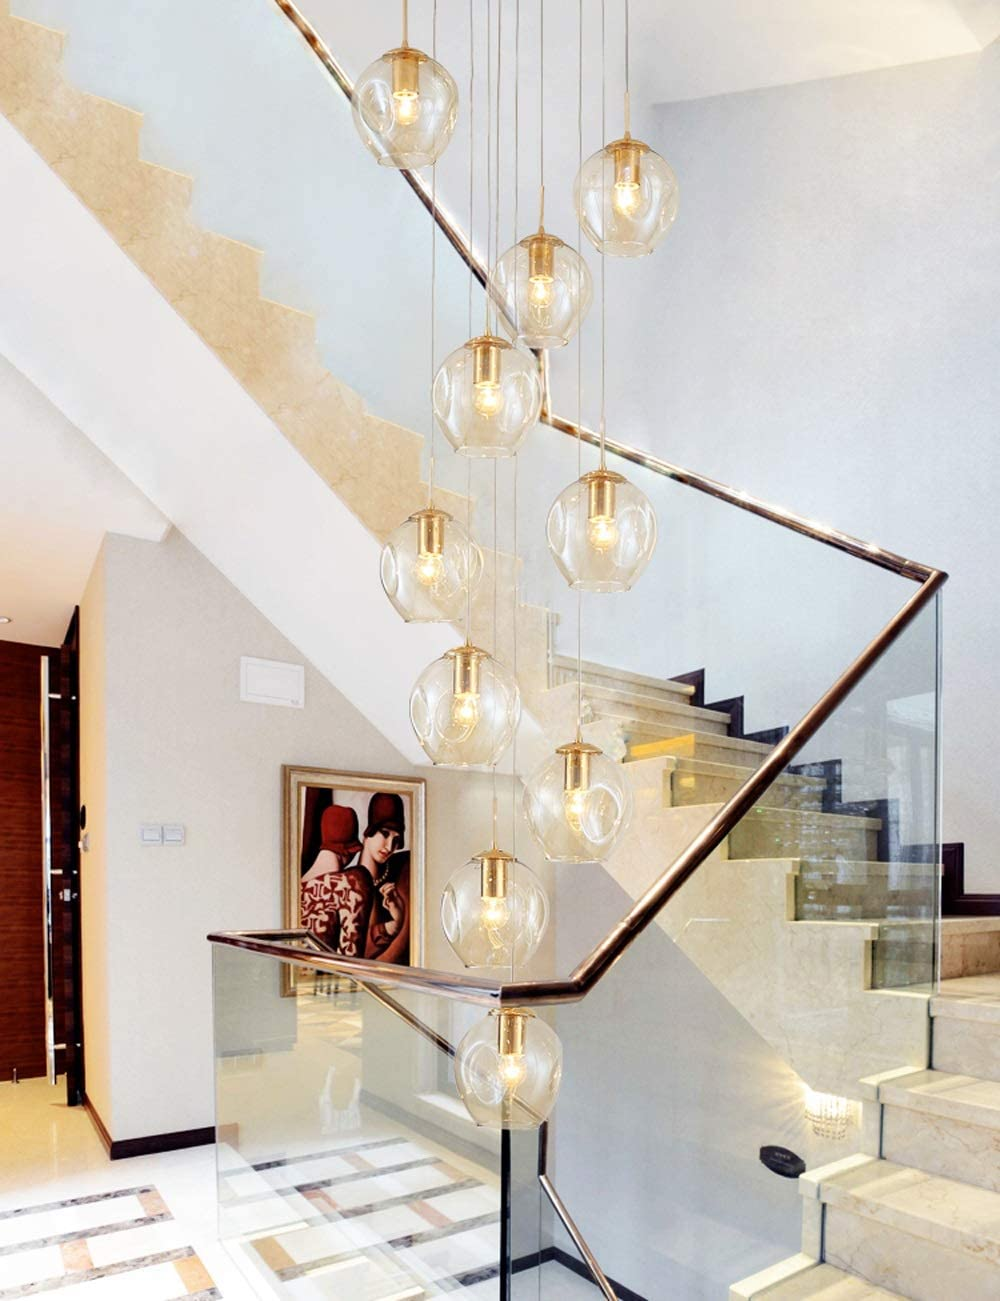 10 Glass Balls Staircase Chandelier Long Pendant Light